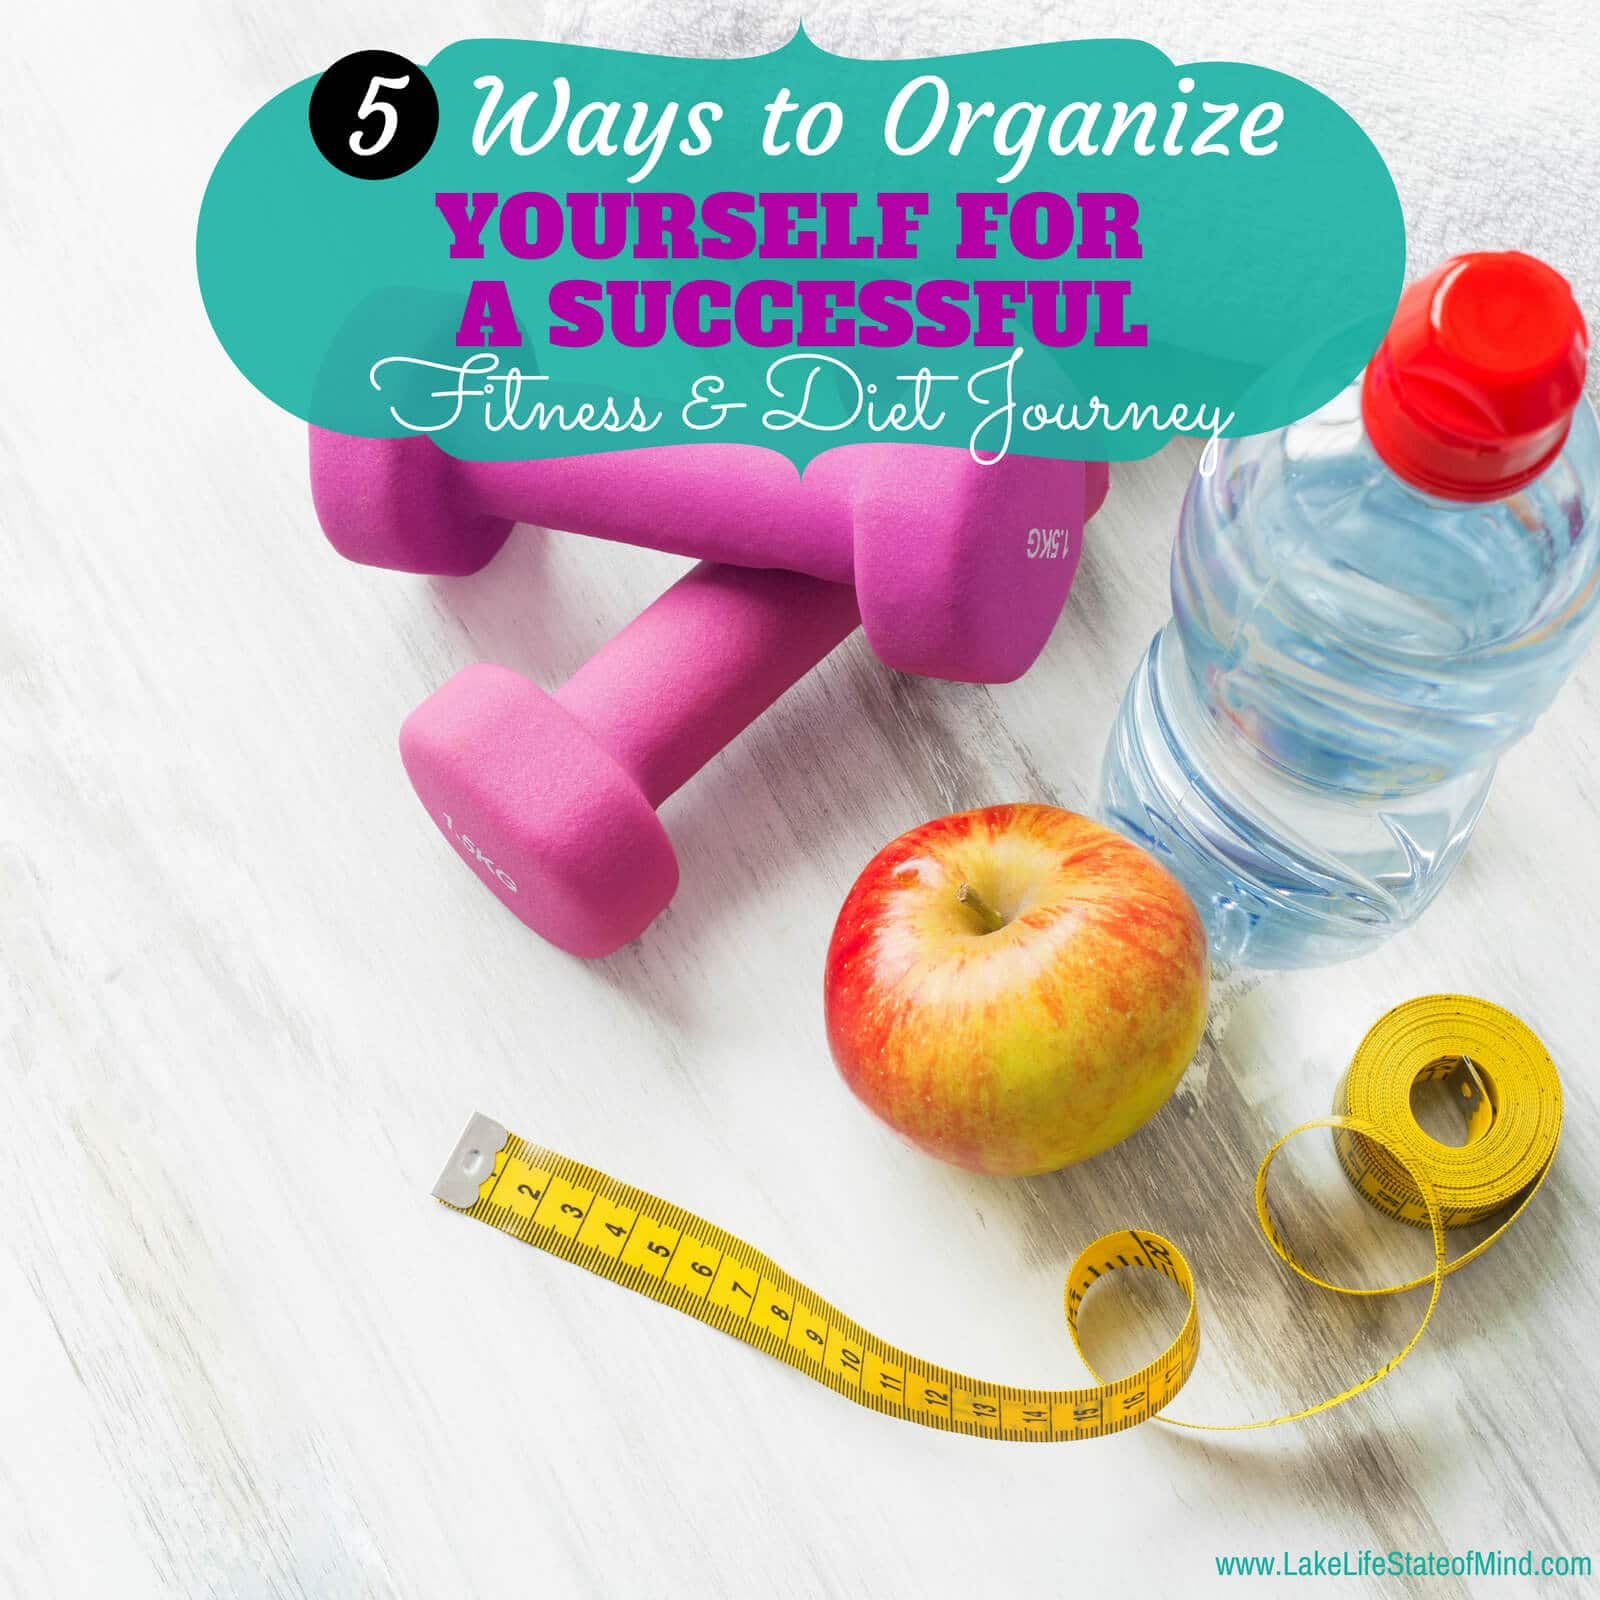 5 Ways to Organize Yourself for a Successful Fitness and Diet Journey